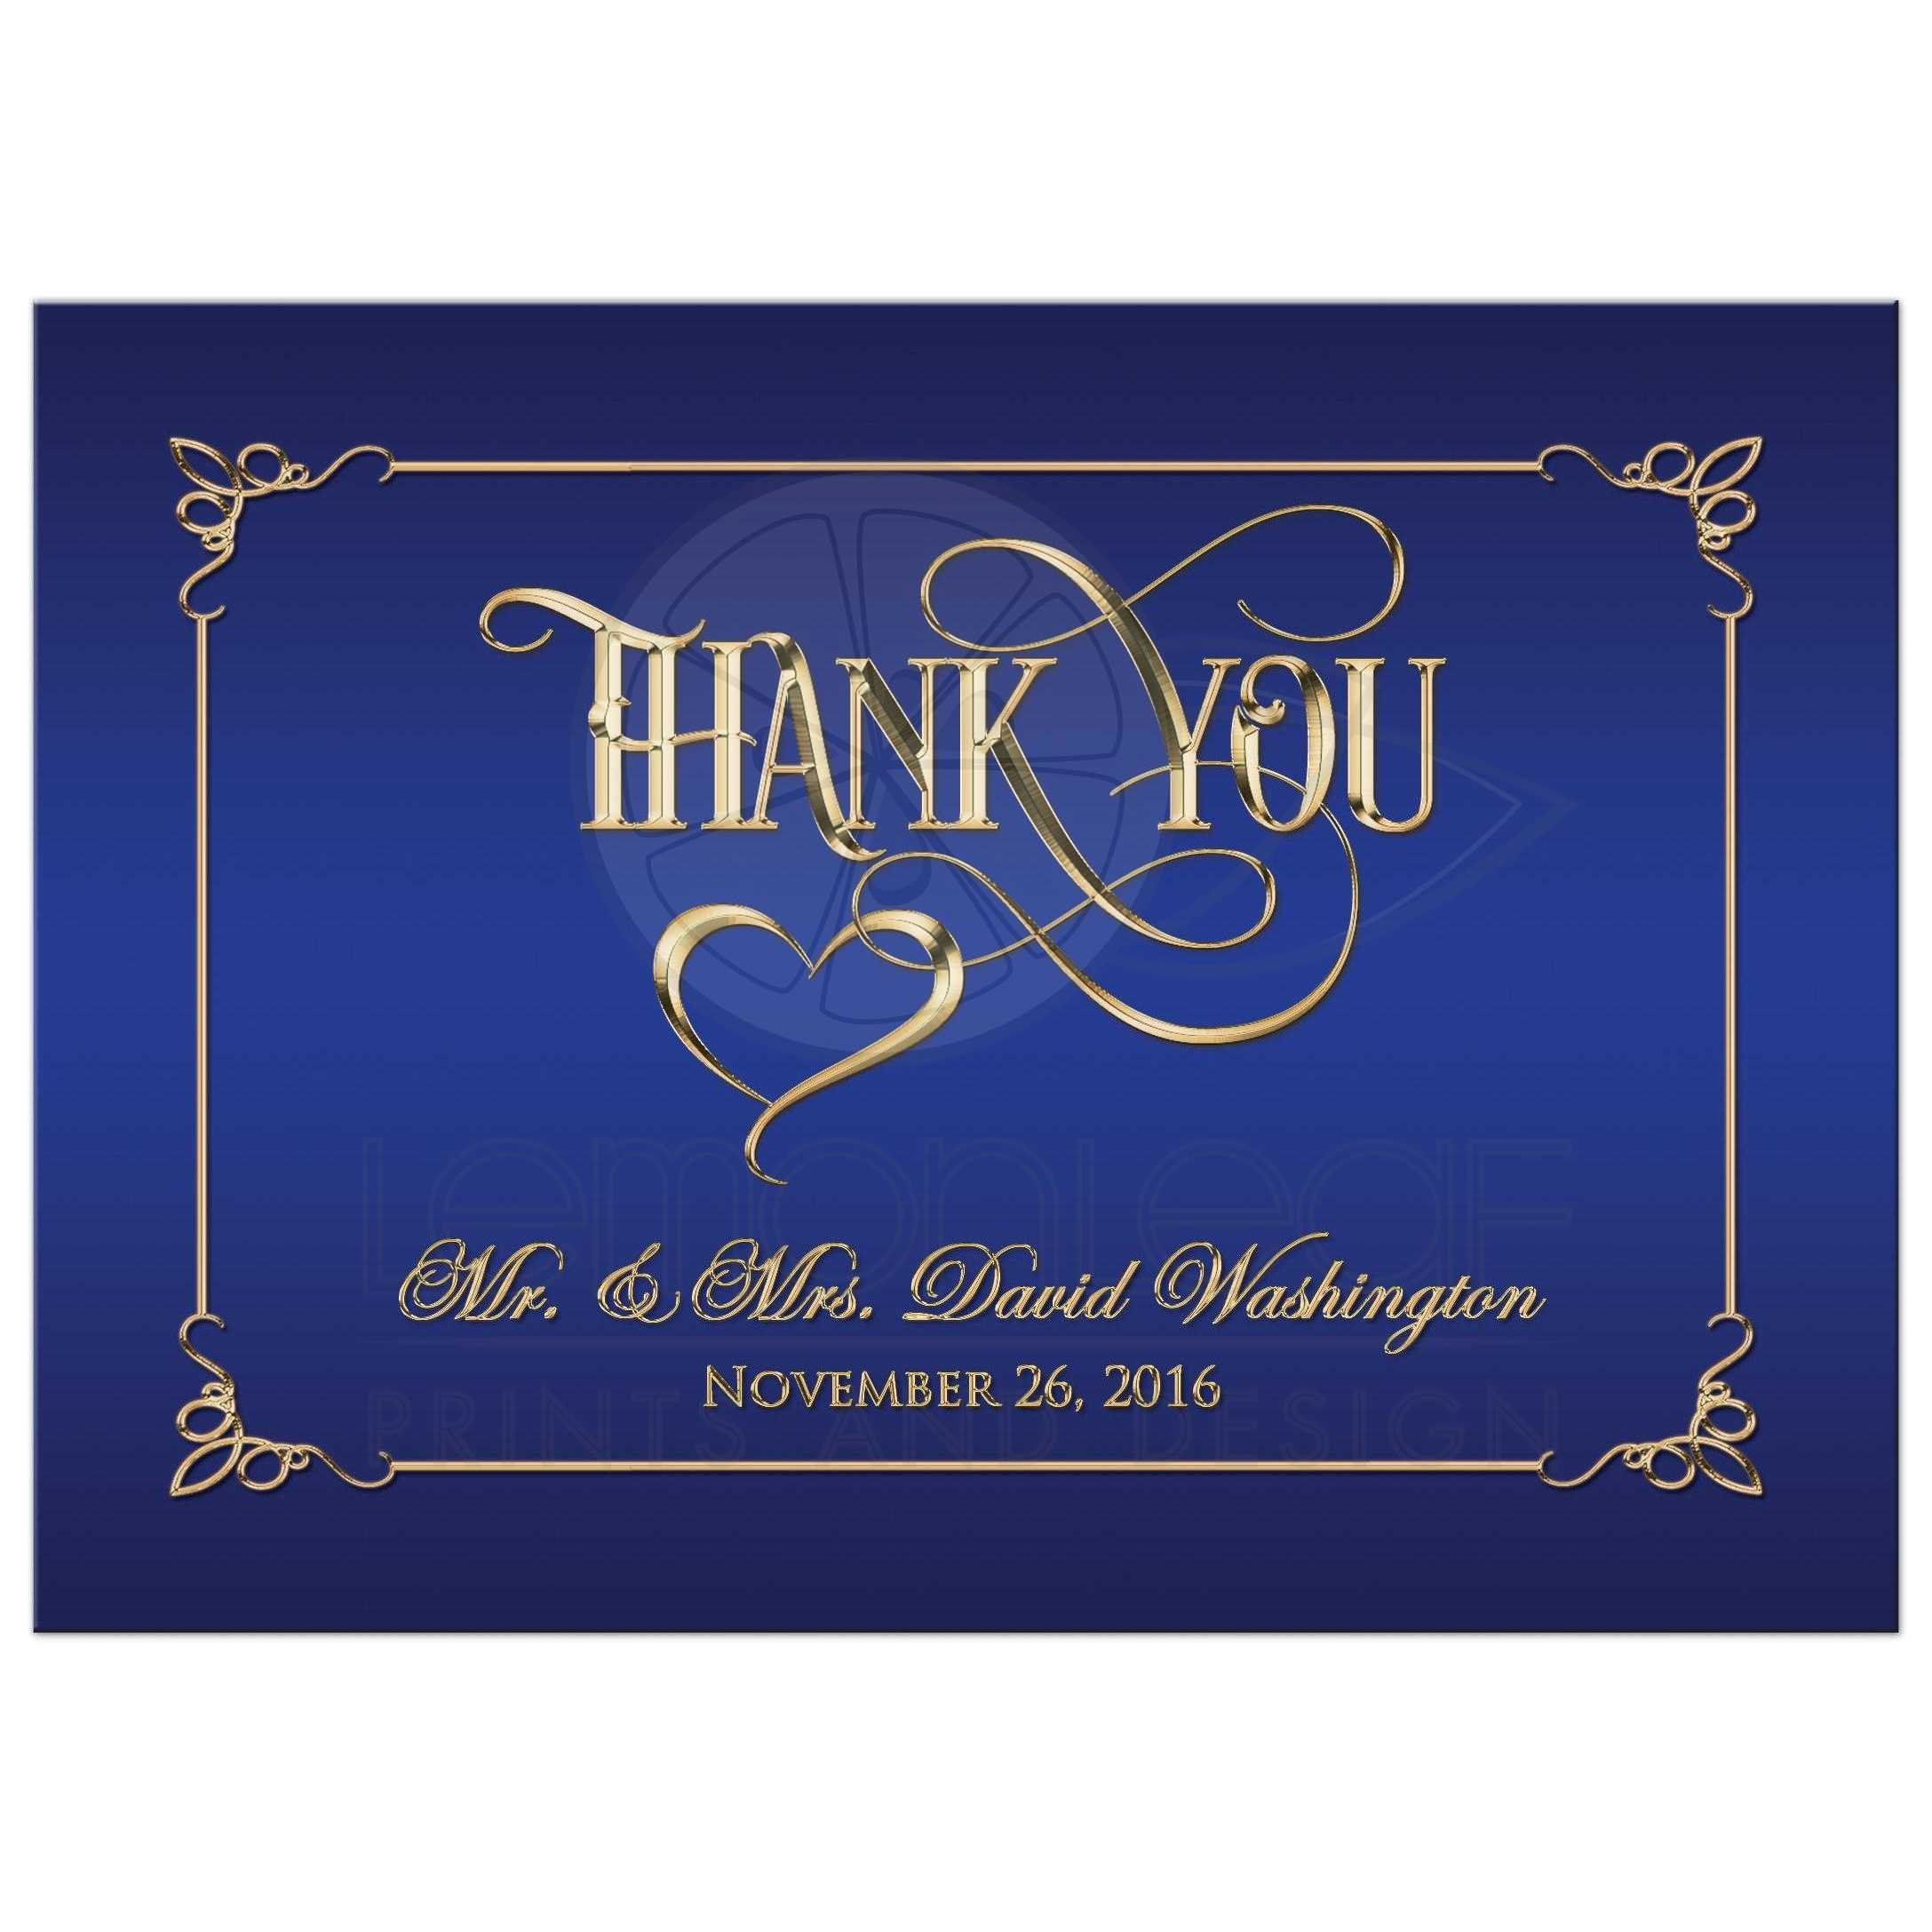 Best Personalized Royal Blue And Gold Photo Wedding Thank You Card